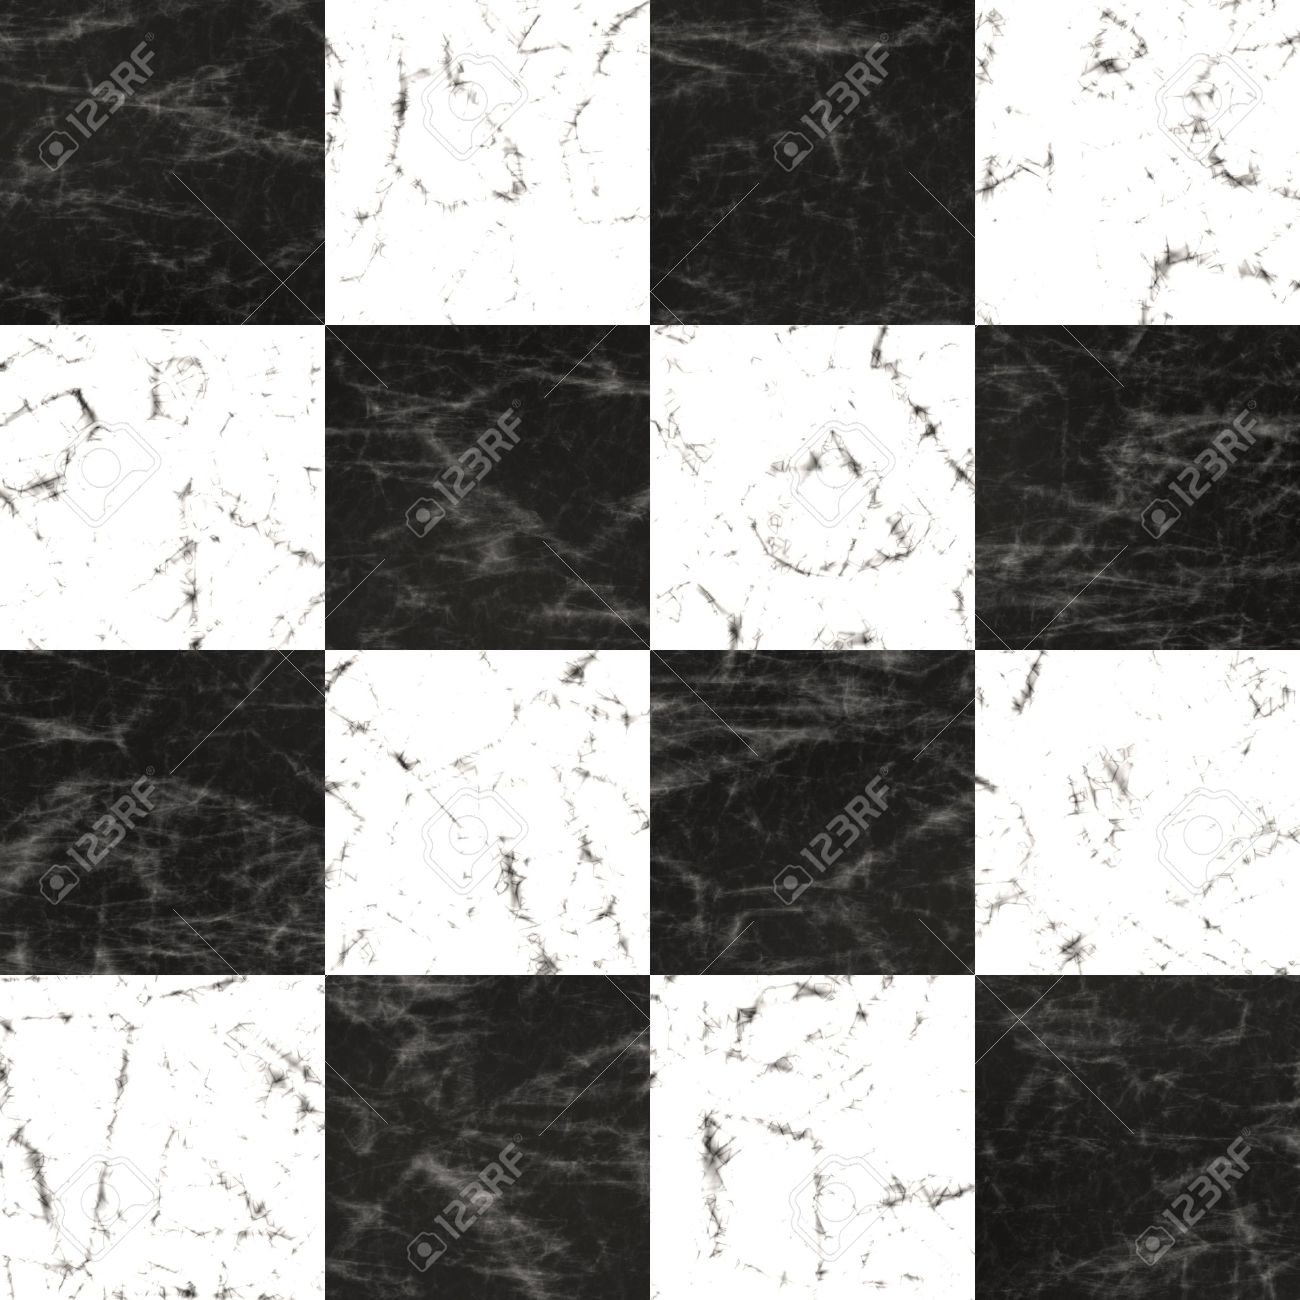 High Quality Seamless Checkerboard Marble Floor Tiling Stock Photo  White Floor Tile Texture Black. Black Floor Texture Seamless